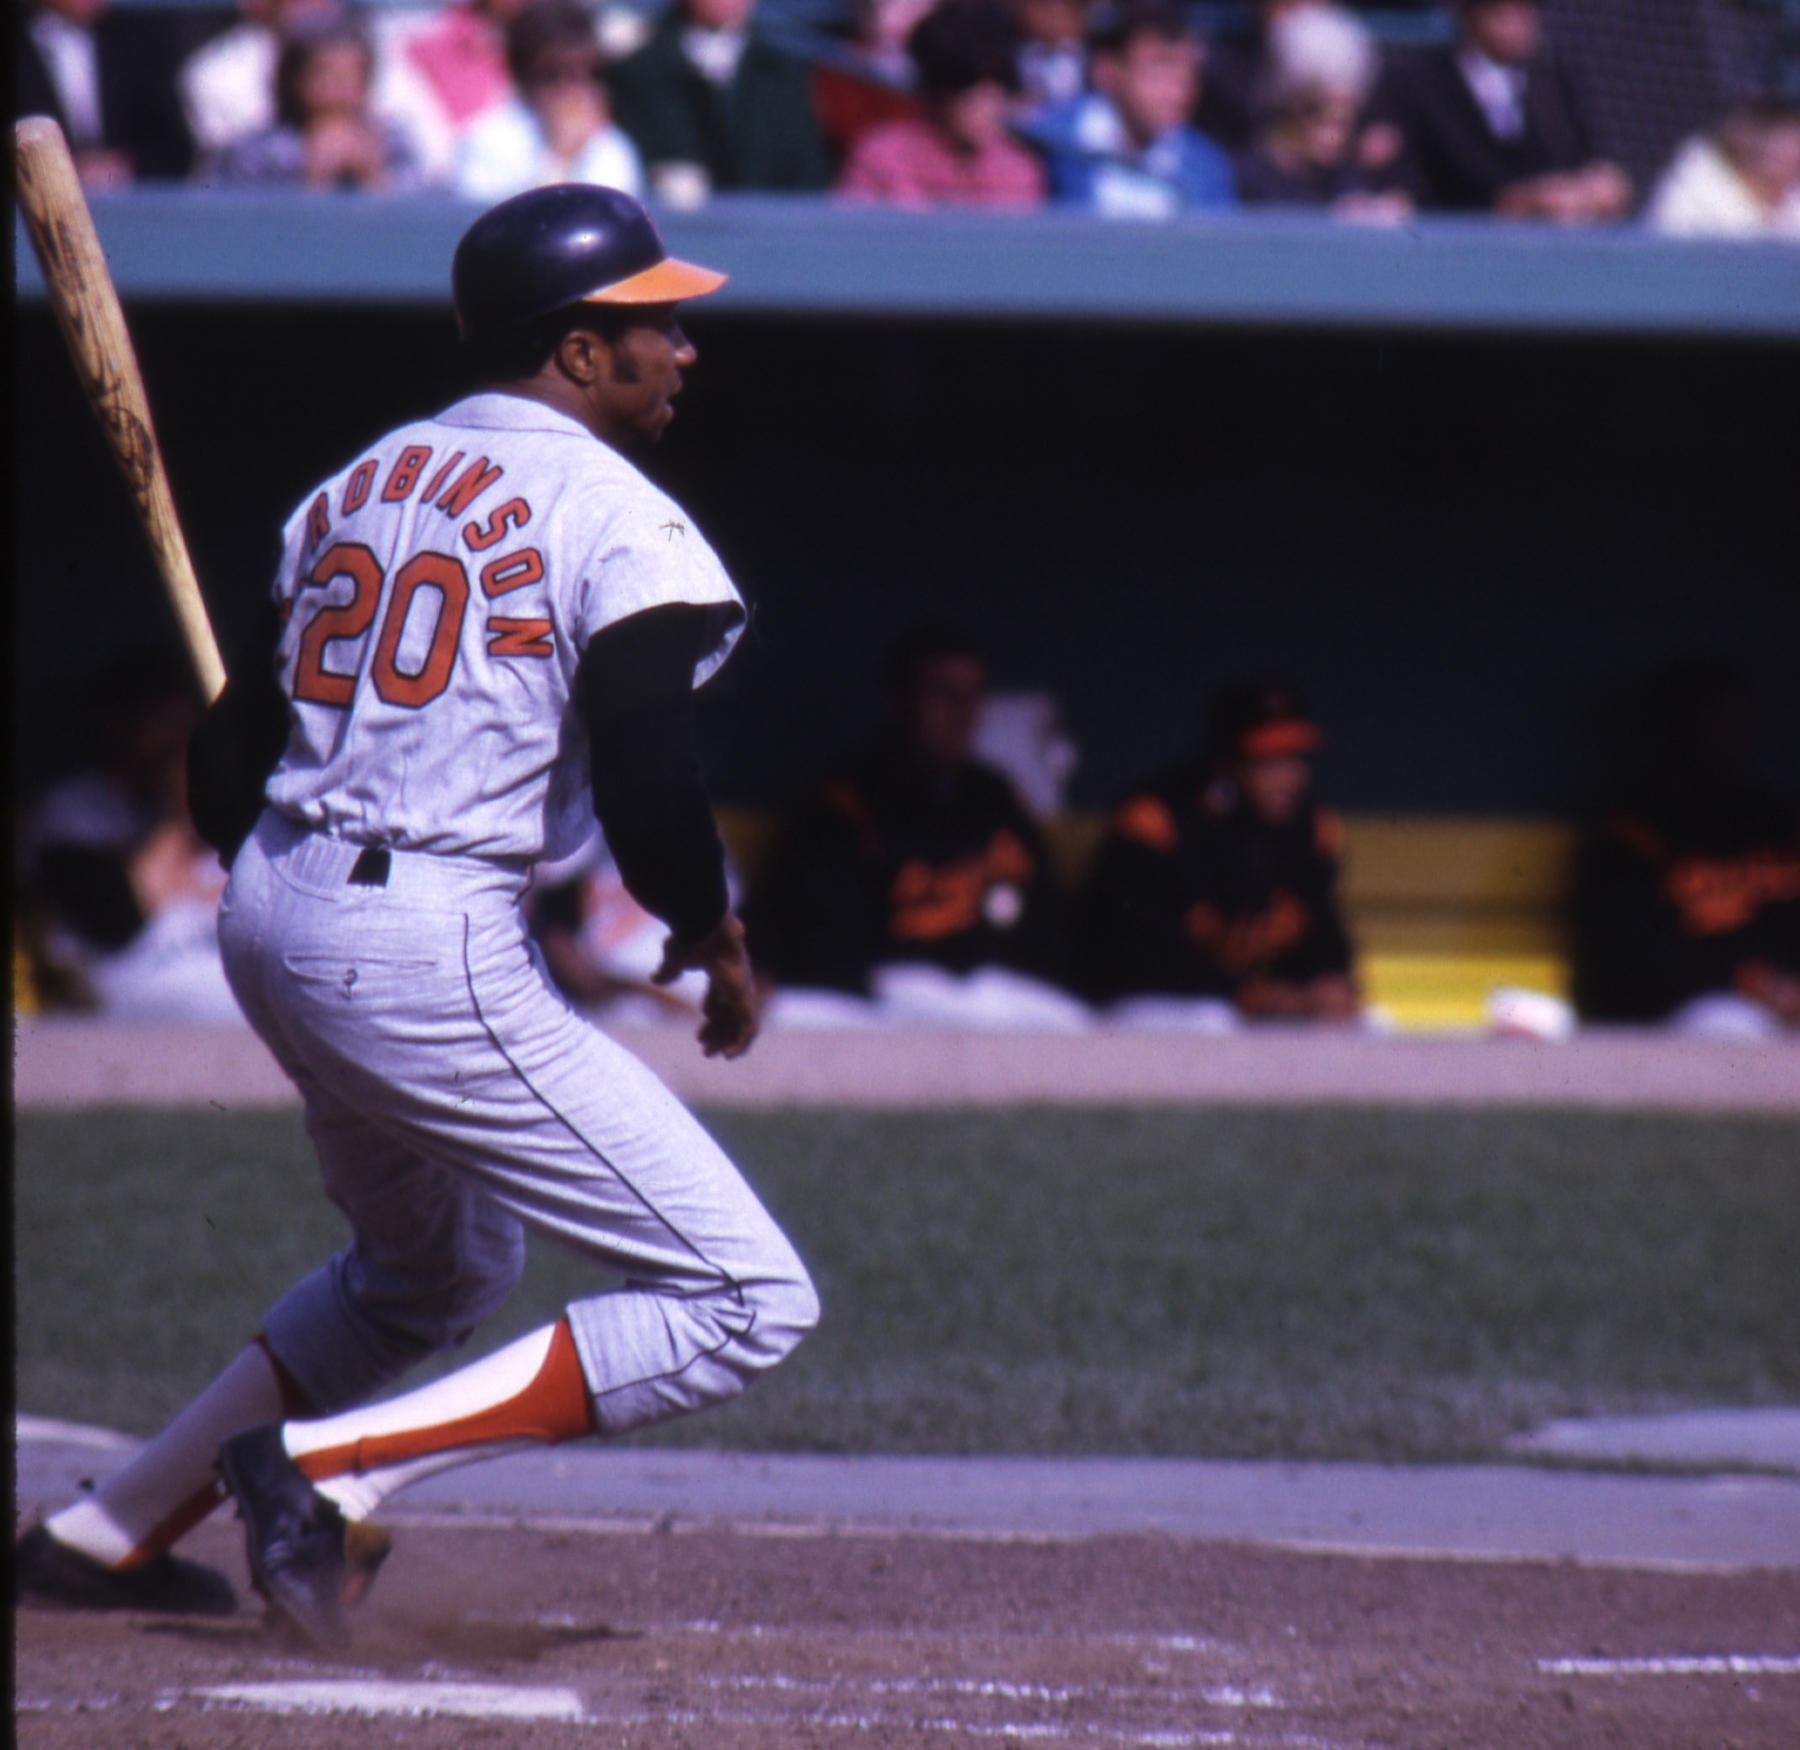 a119455bf Frank Robinson led the Baltimore Orioles to two World Series titles and  four American League pennants